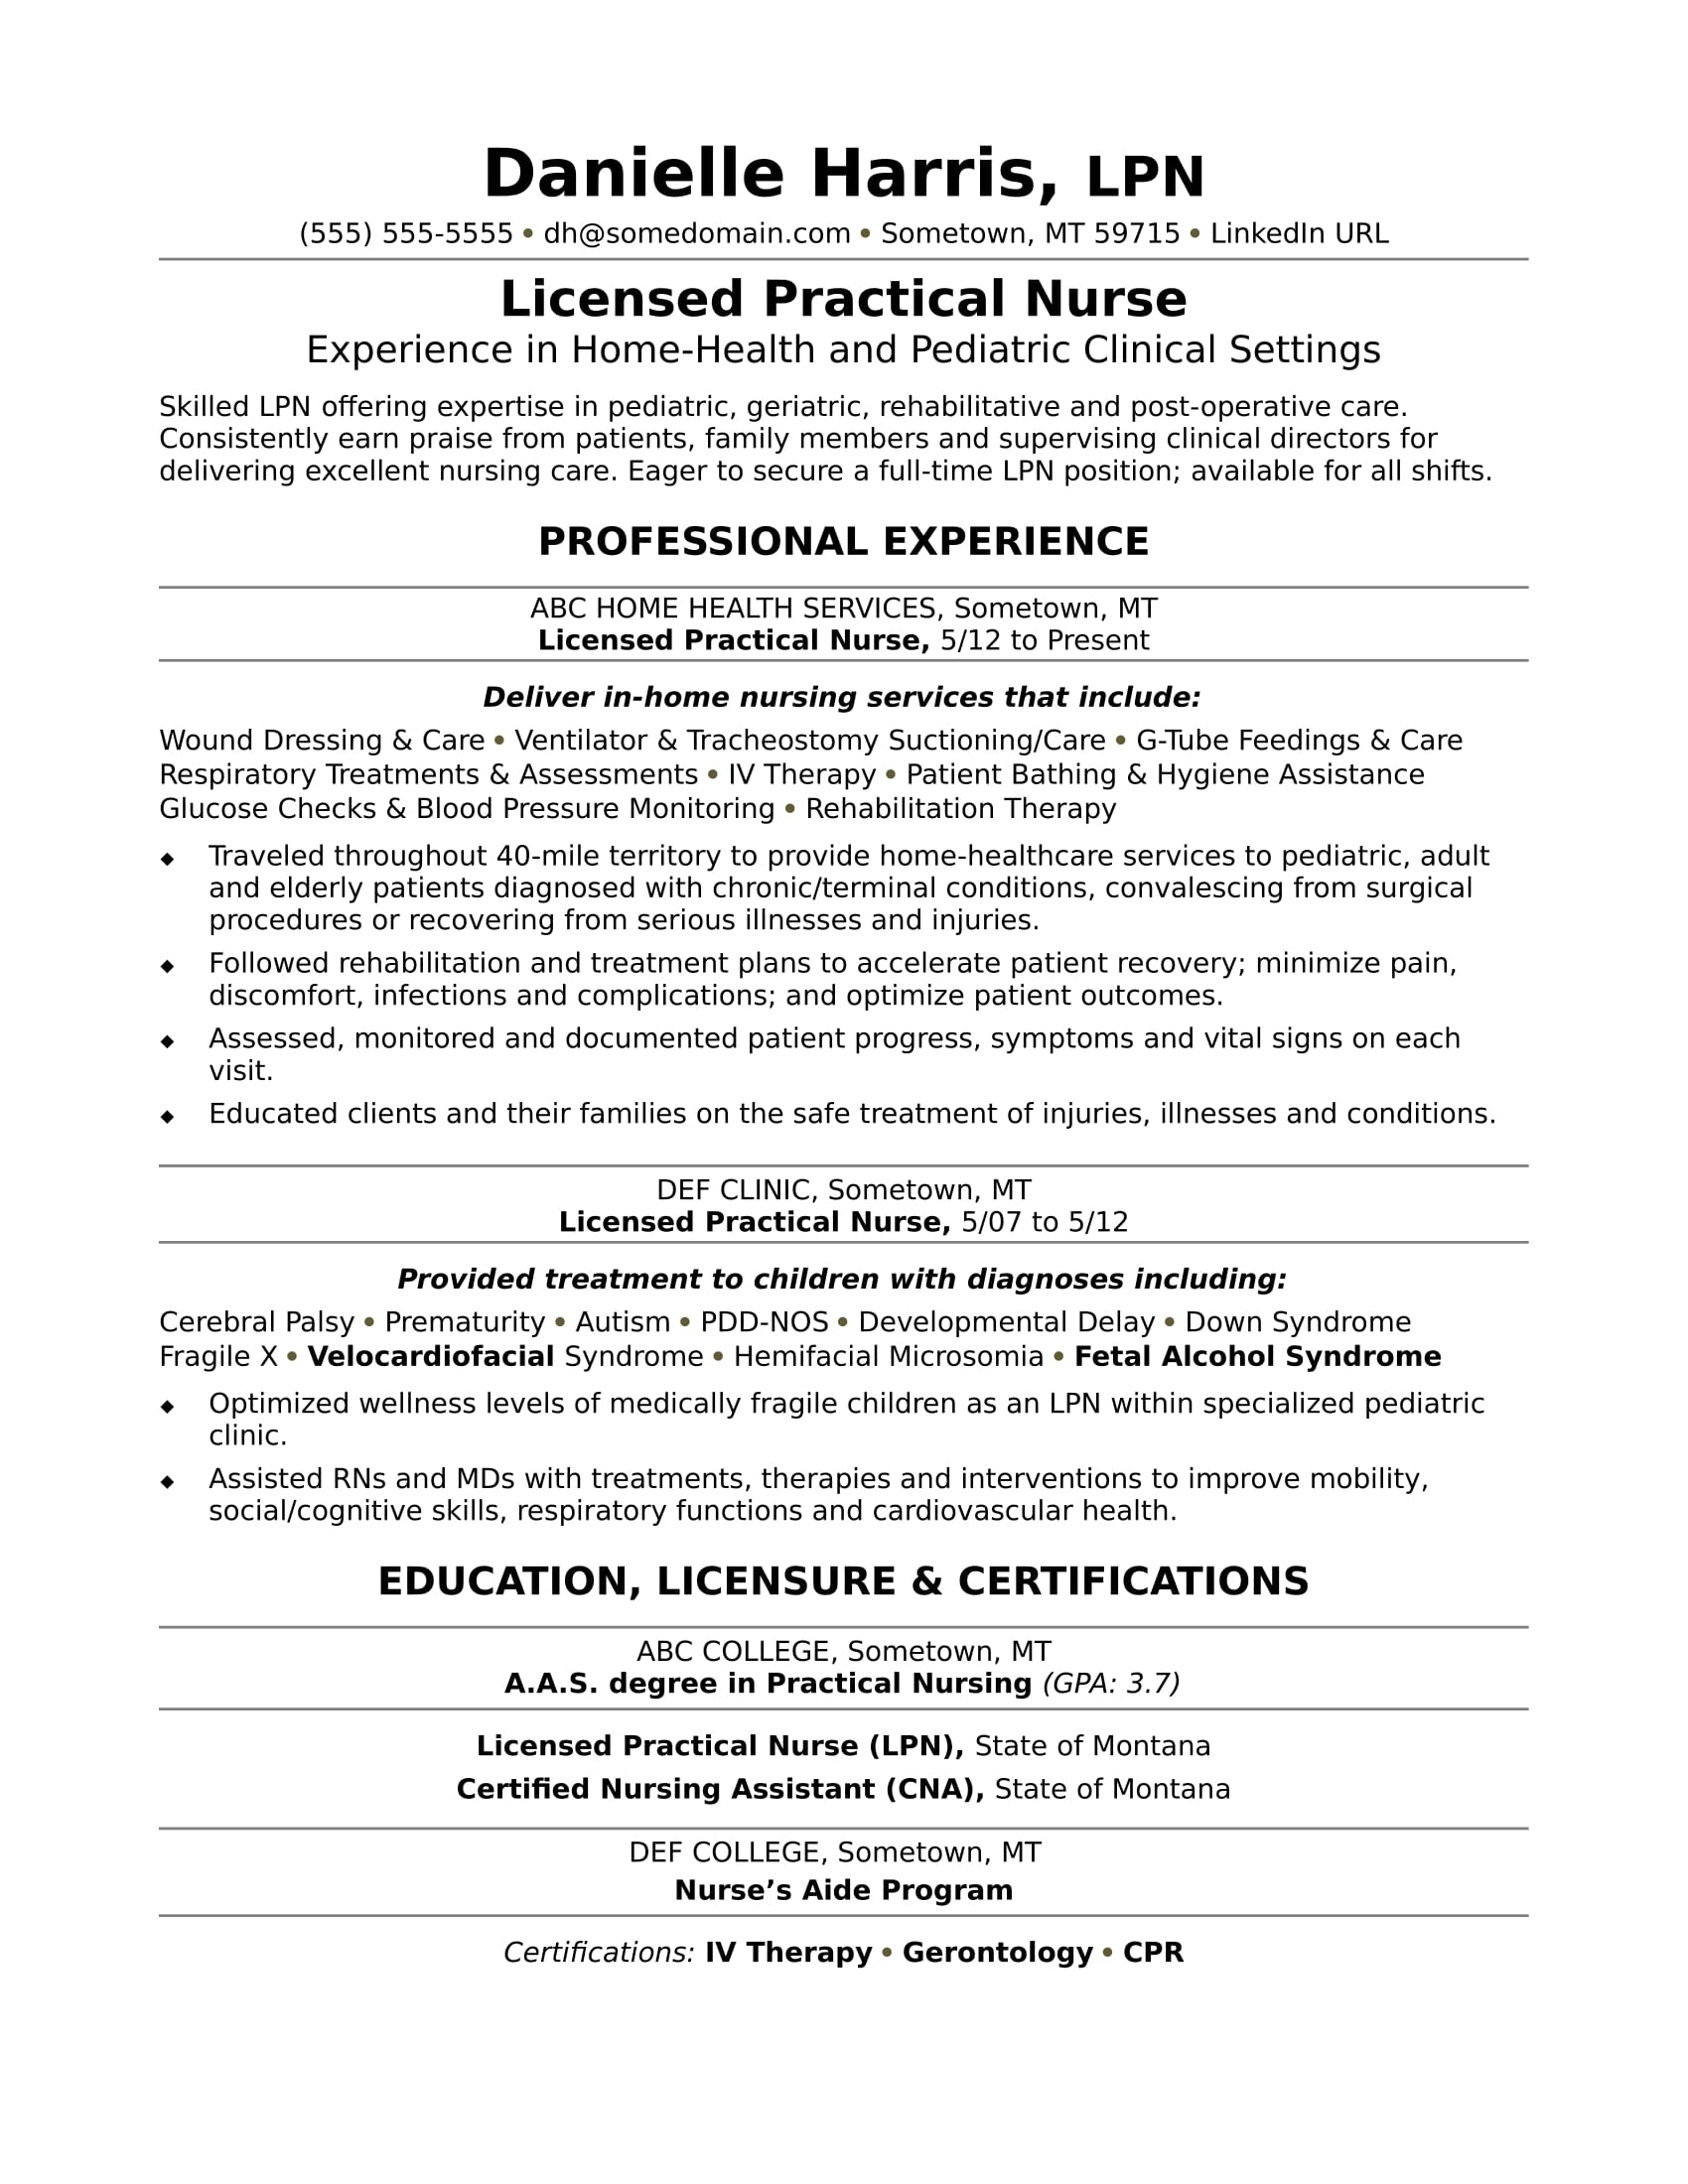 licensed practical nurse resume sample. Black Bedroom Furniture Sets. Home Design Ideas